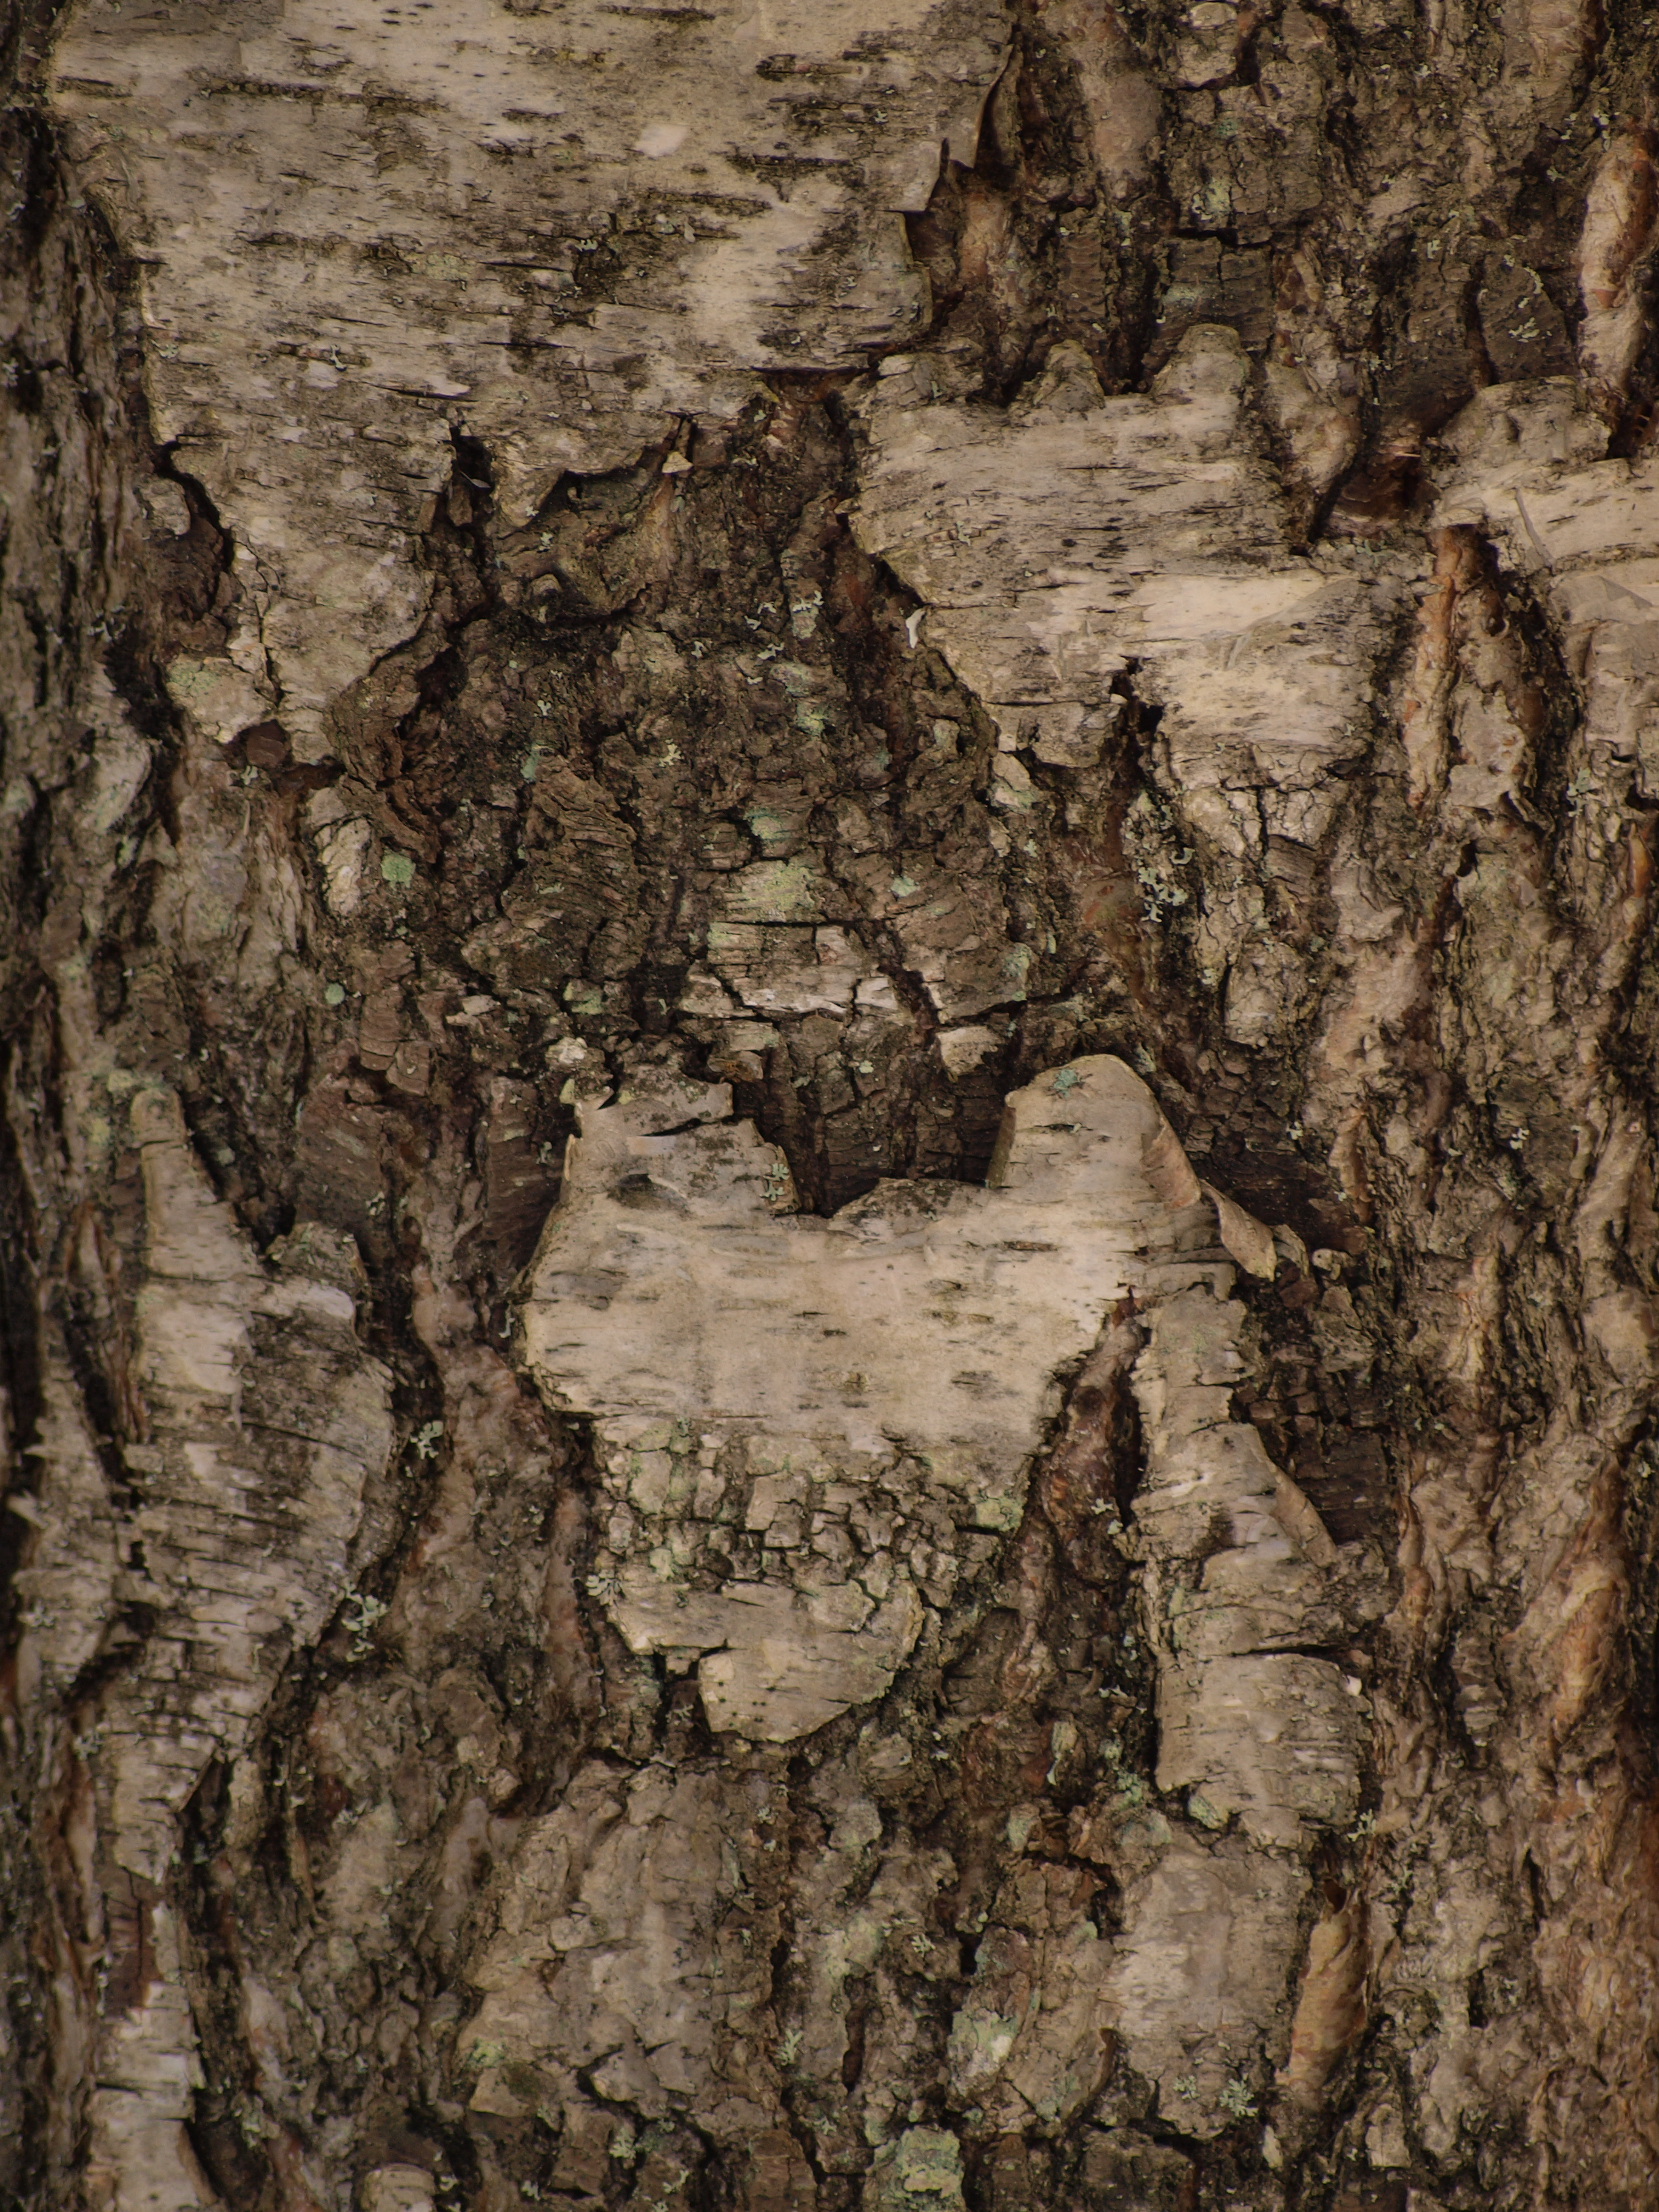 Wood Bark Texture Non-Commercial | HQ Photo Wood Bark Texture